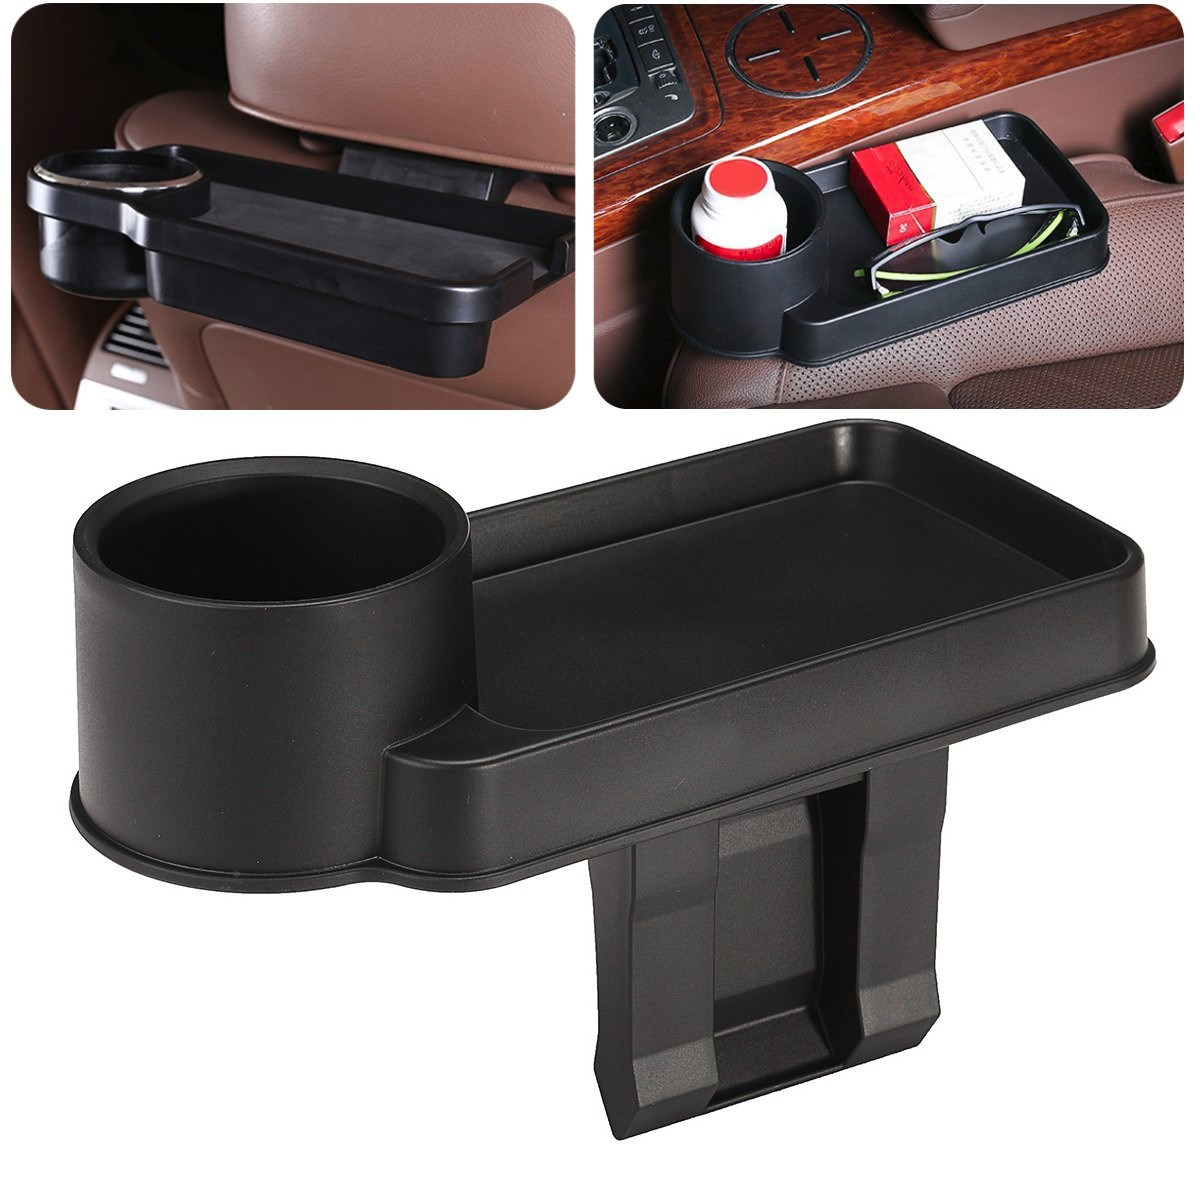 car auto cup holder multifunction vehicle seat cup cell phone drinks holders glove box car. Black Bedroom Furniture Sets. Home Design Ideas